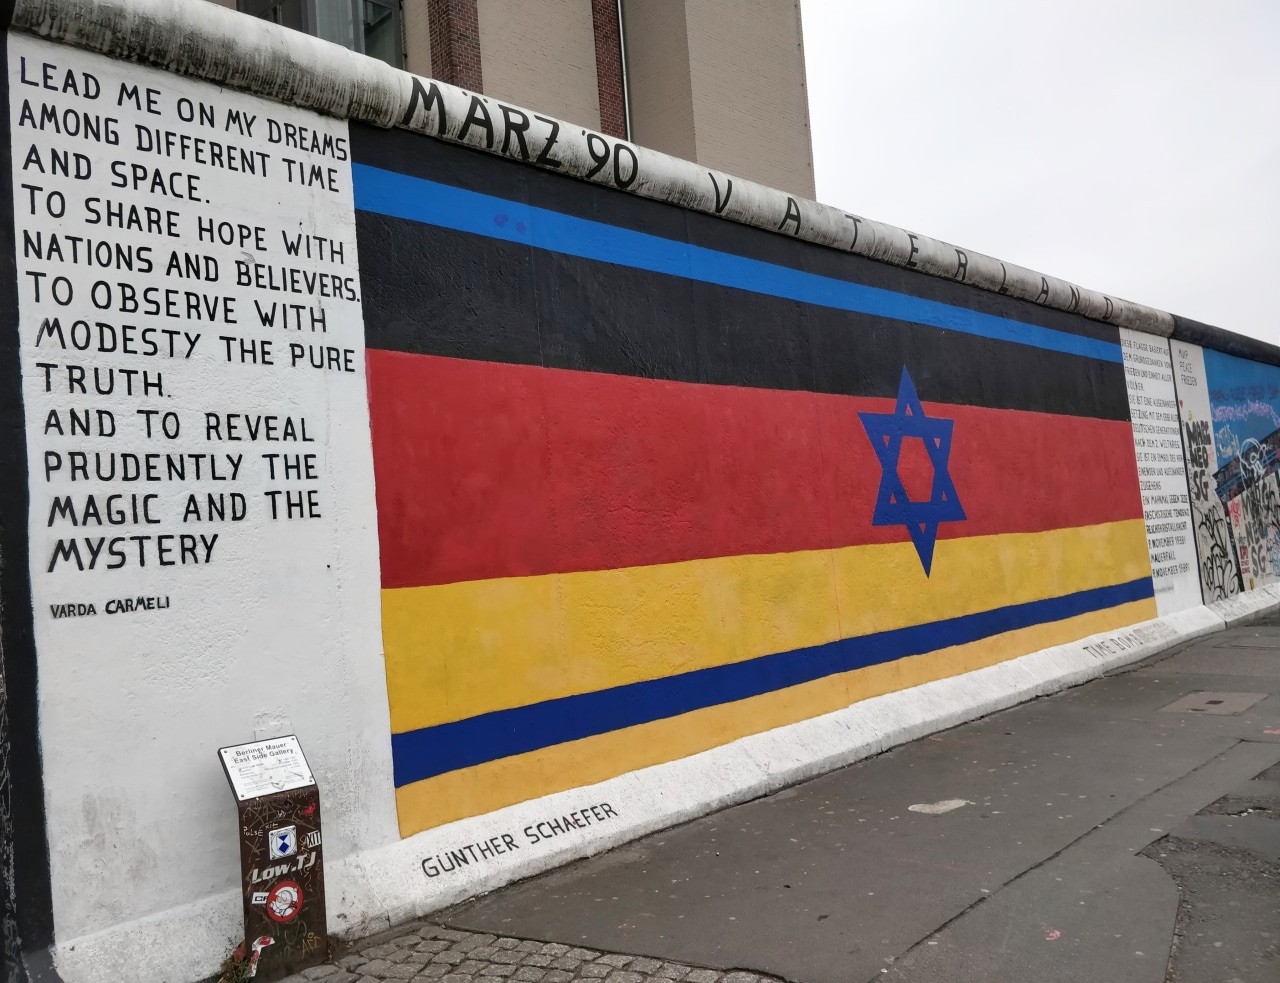 Artist Günther Schaefer fuses German and Israeli flags in this painting to commemorate the traumatic beginning of Fascism and Communism. The flag and its 'pendant painting' were created to honour of the 50th anniversary of the Night of the Broken Glass when Nazi forces in Germany and Austria destroyed Jewish-owned shops. The painting lends itself as a protest against extreme regimes and abuses of human rights.